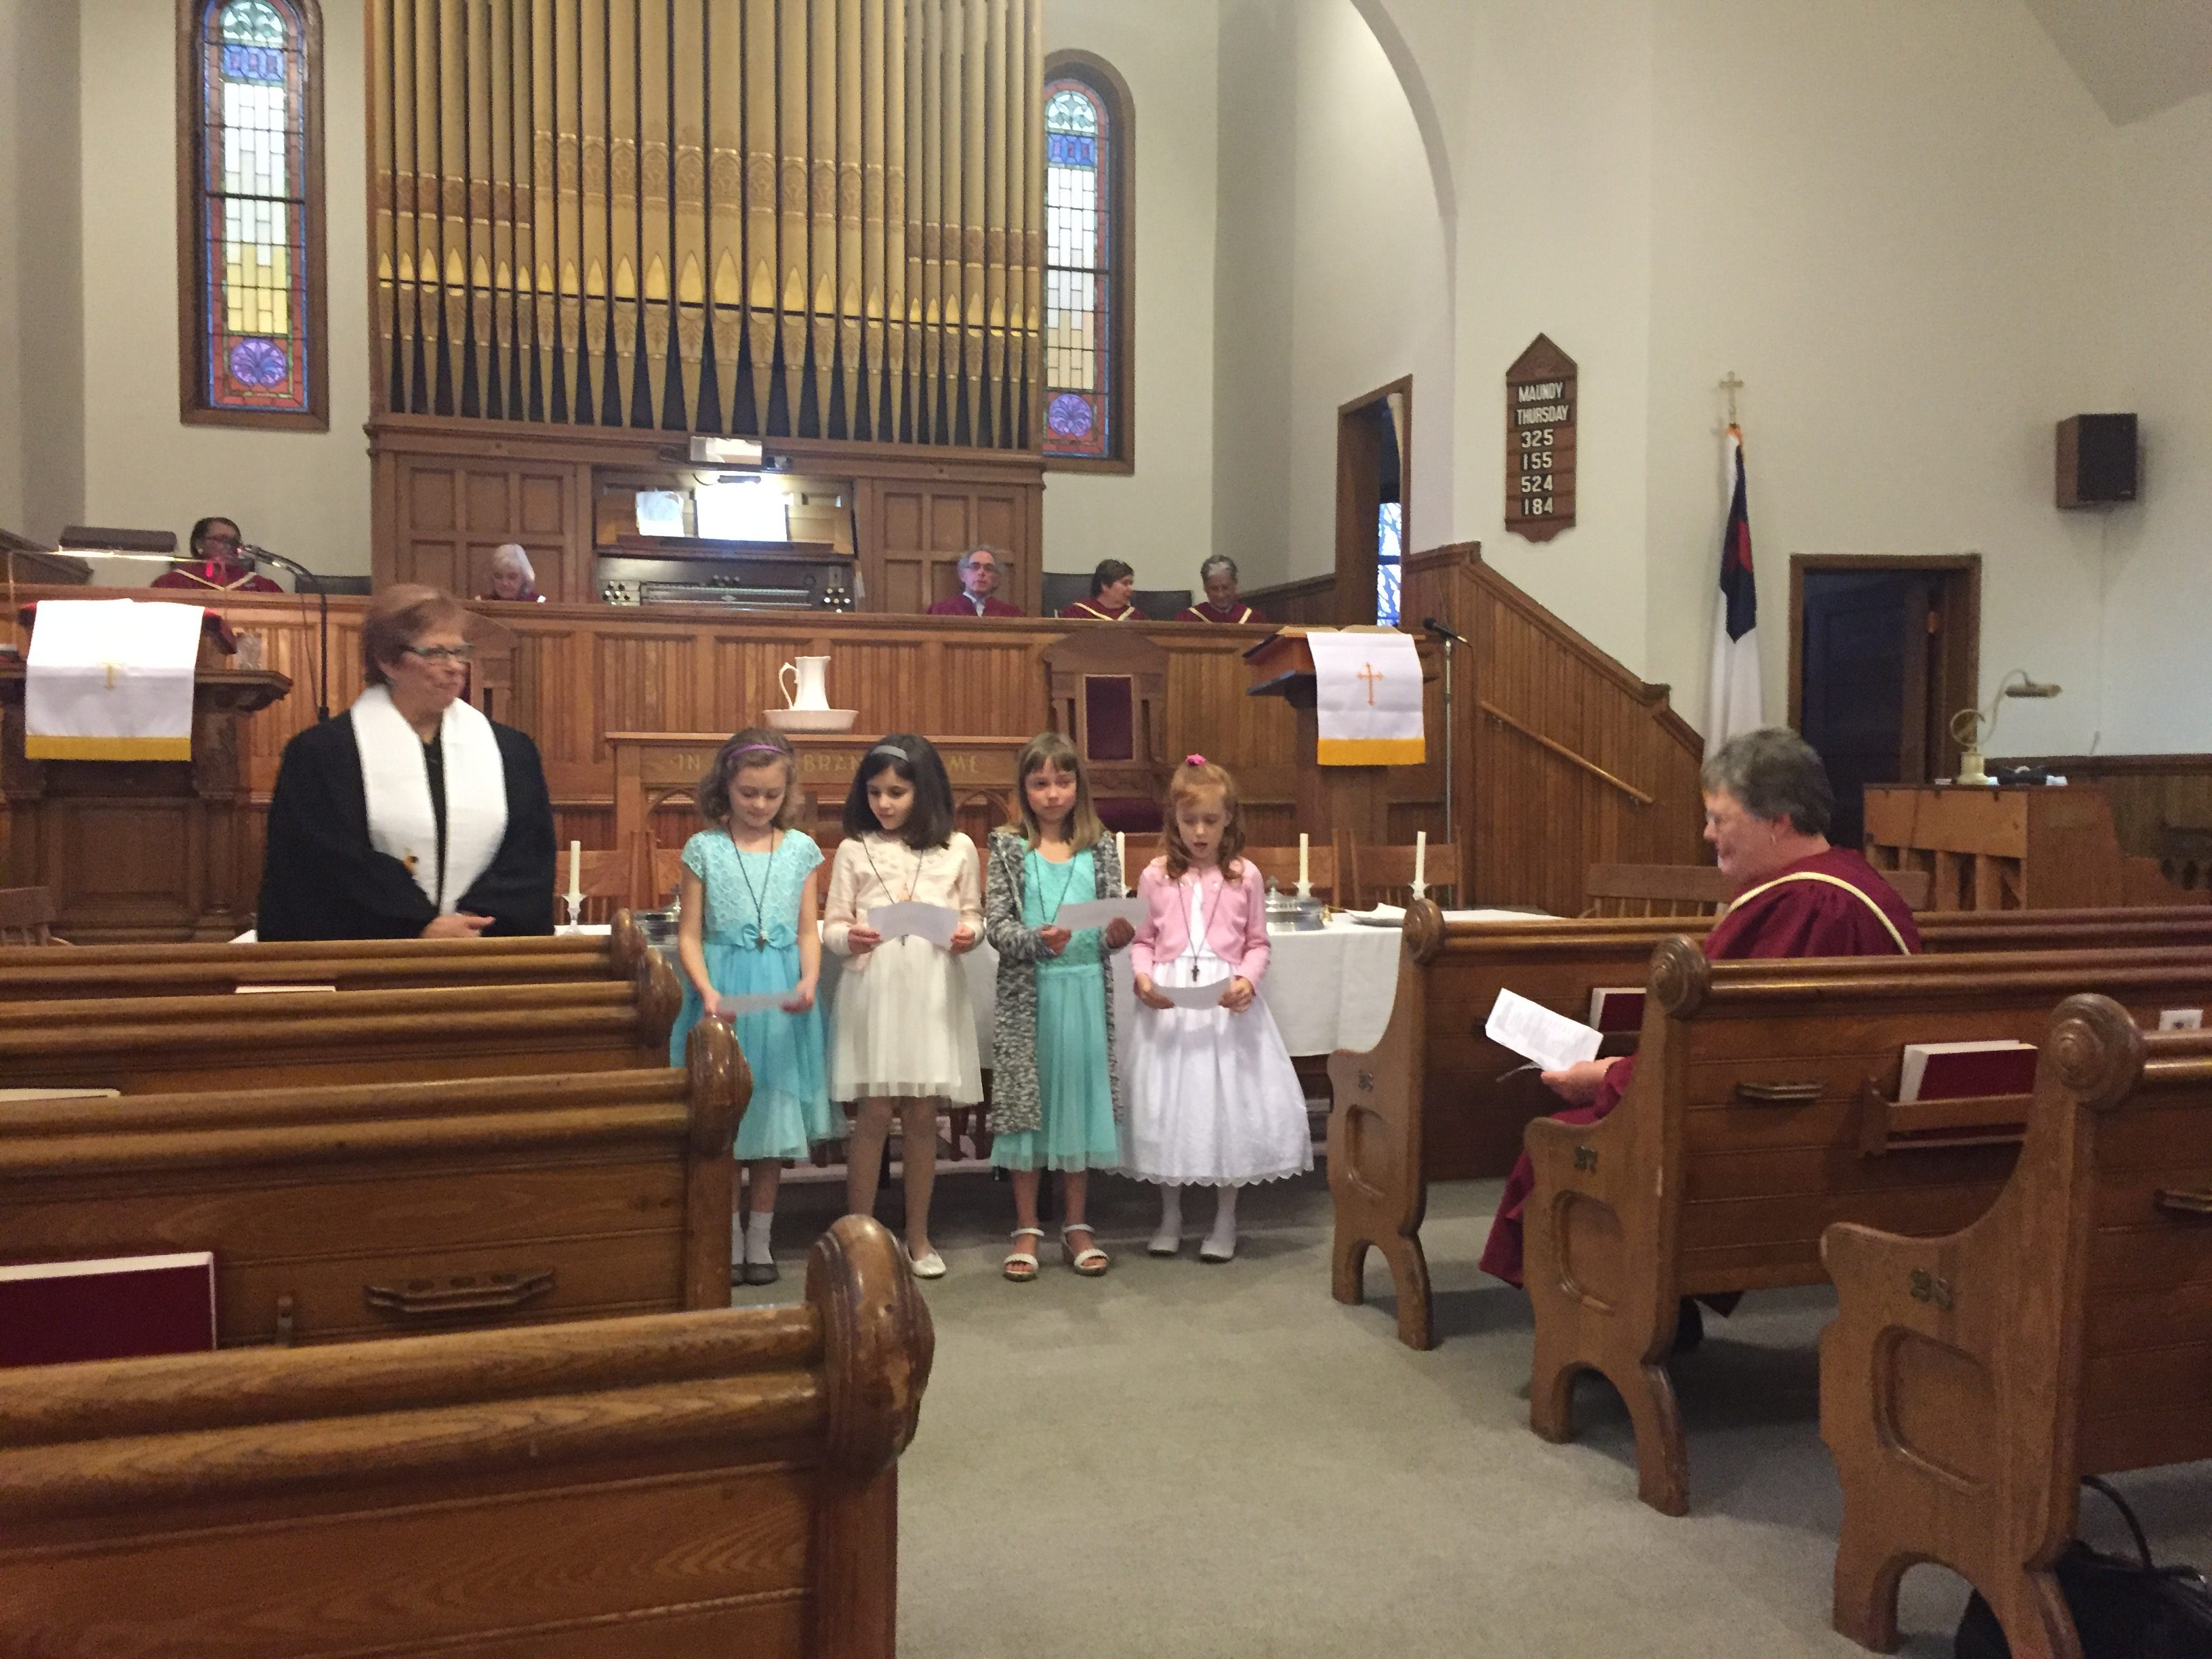 Our First Communion Class